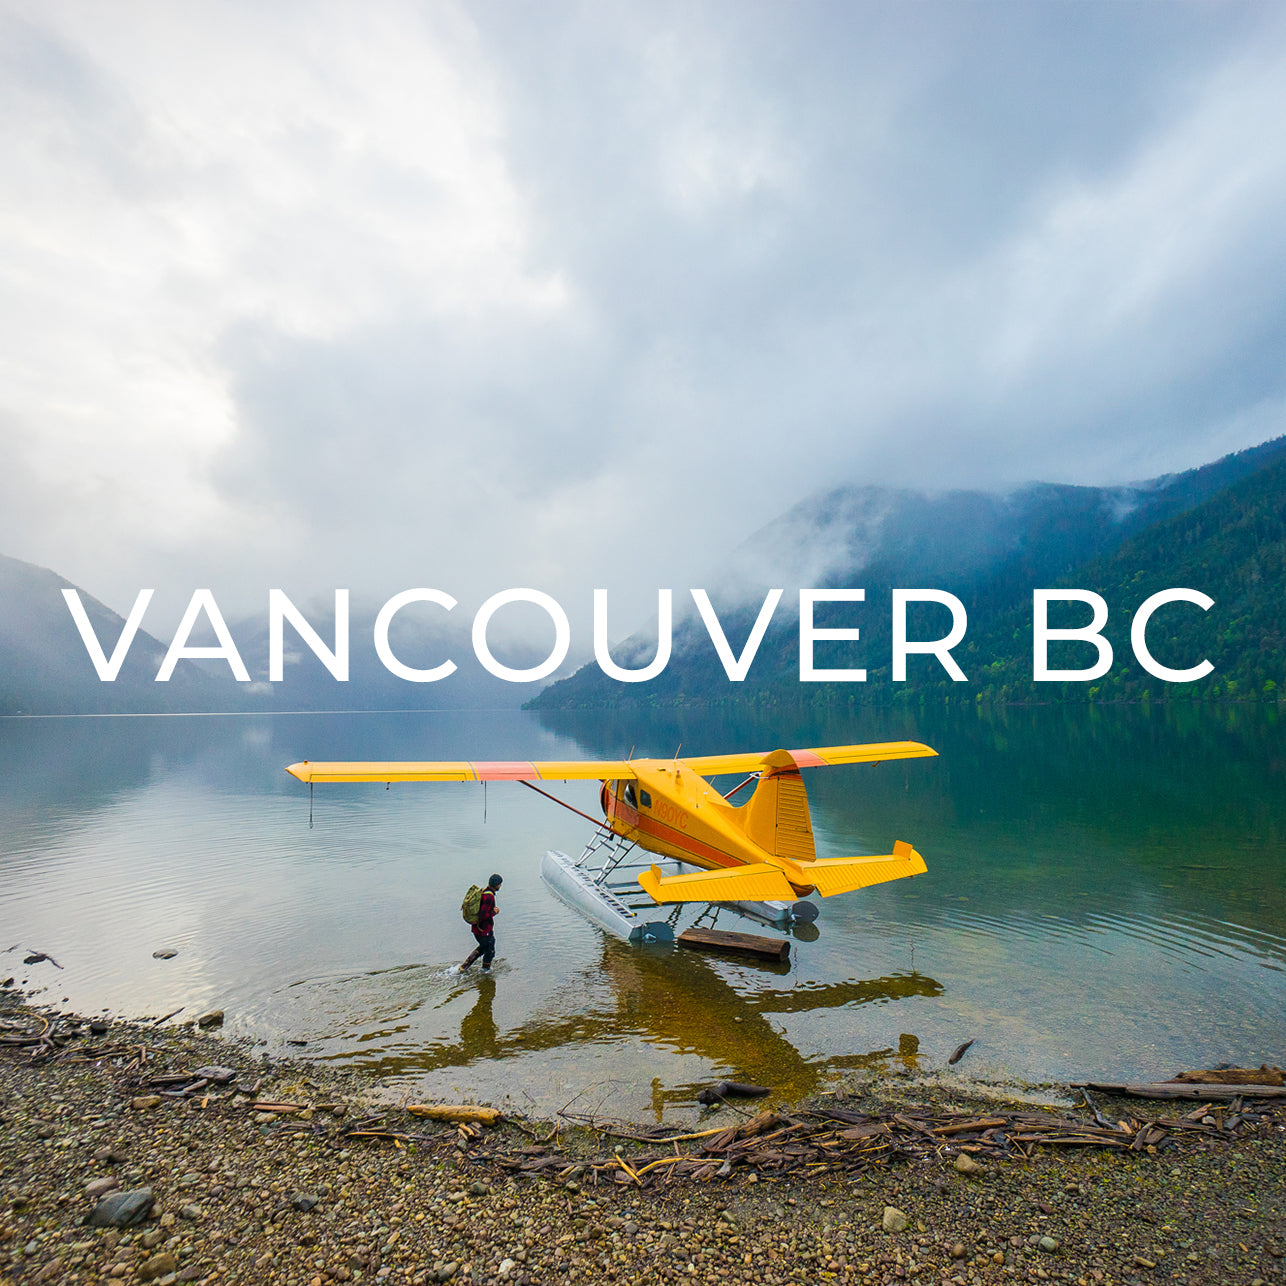 1-Day Vancouver BC Photo Workshop